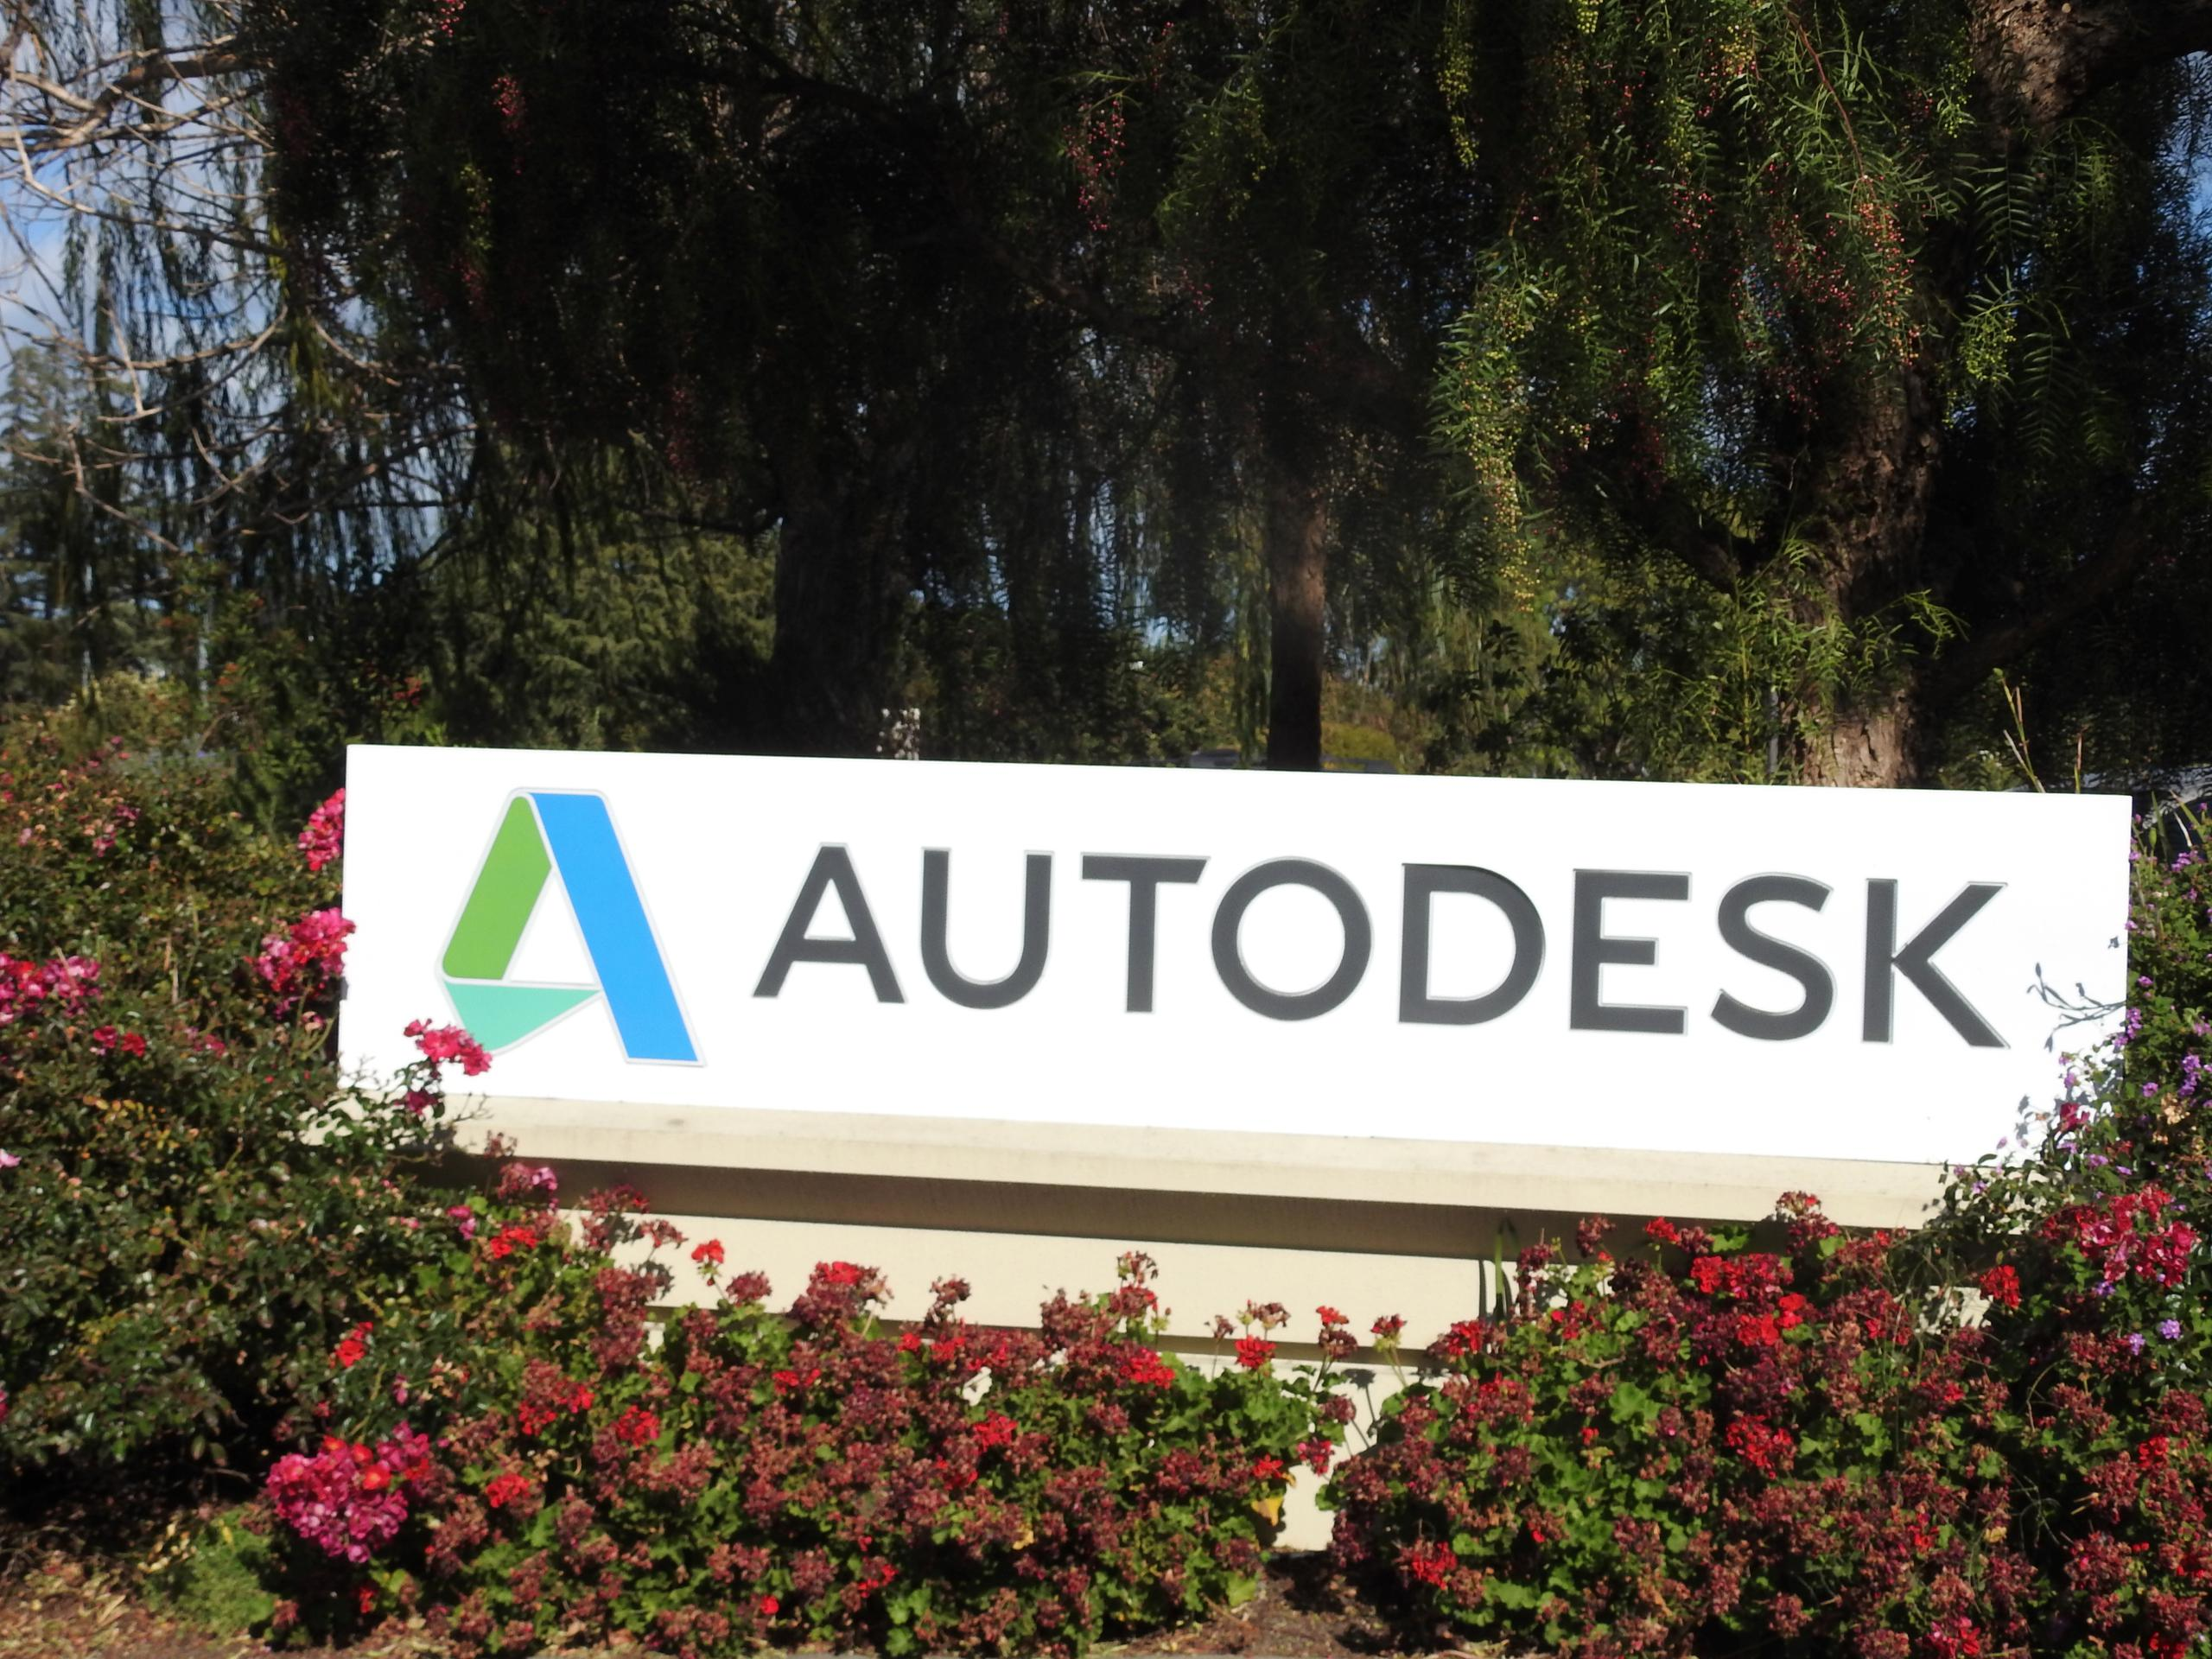 Entrance to Autodesk's corporate headquarters in Mill Valley, California.